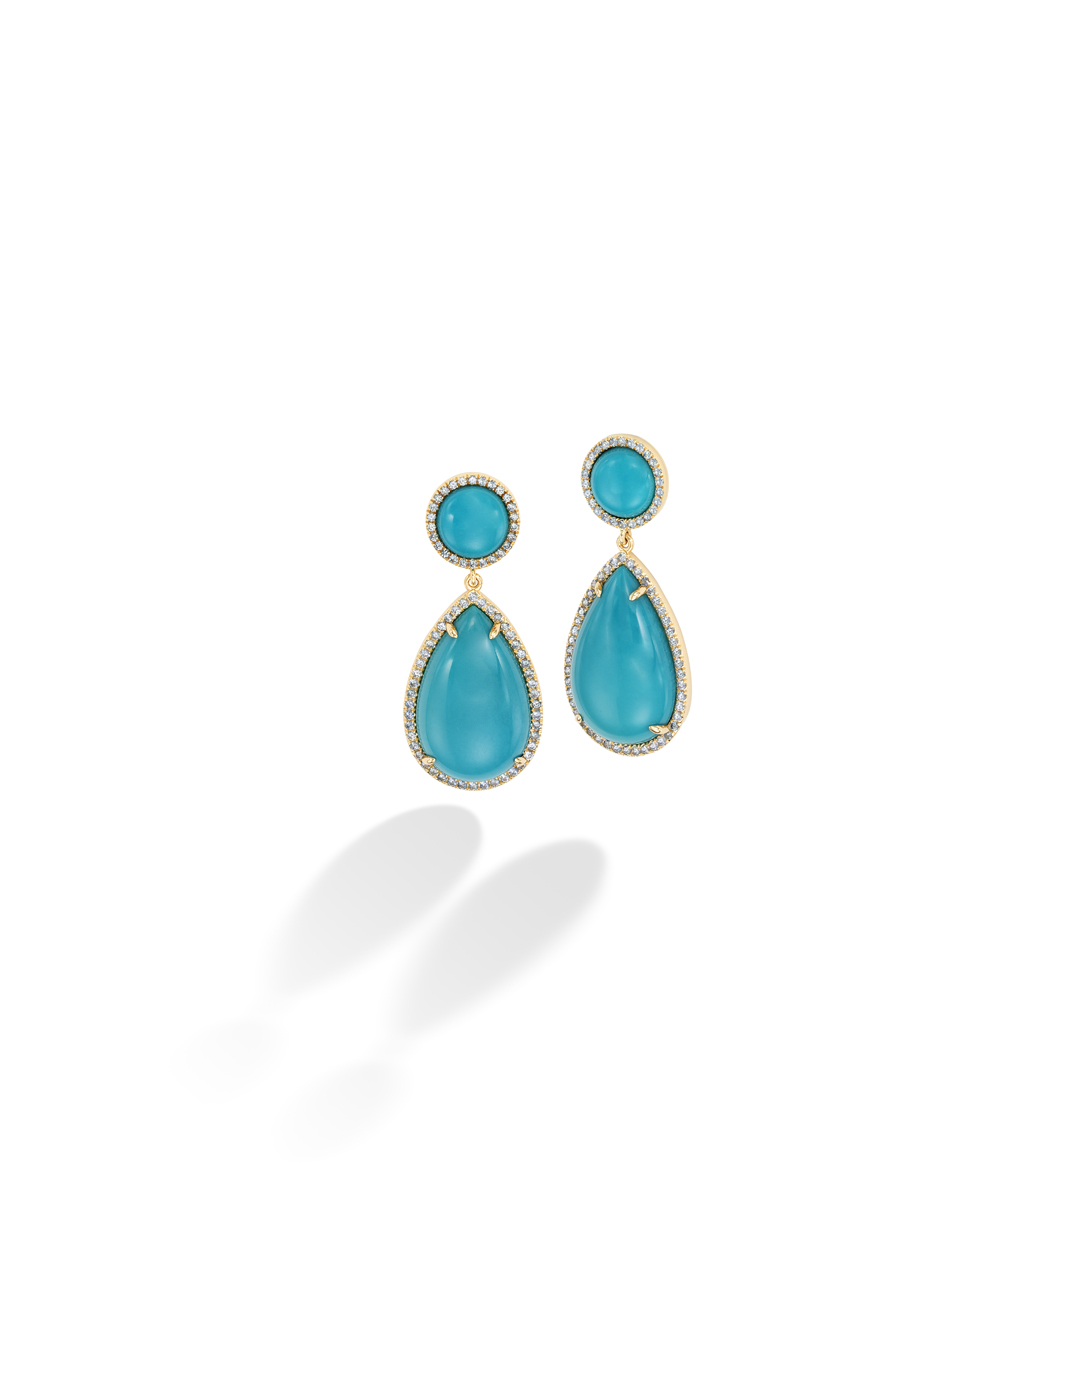 mish_products_earrings_Makena-Turq-BlSapphire-ER-1